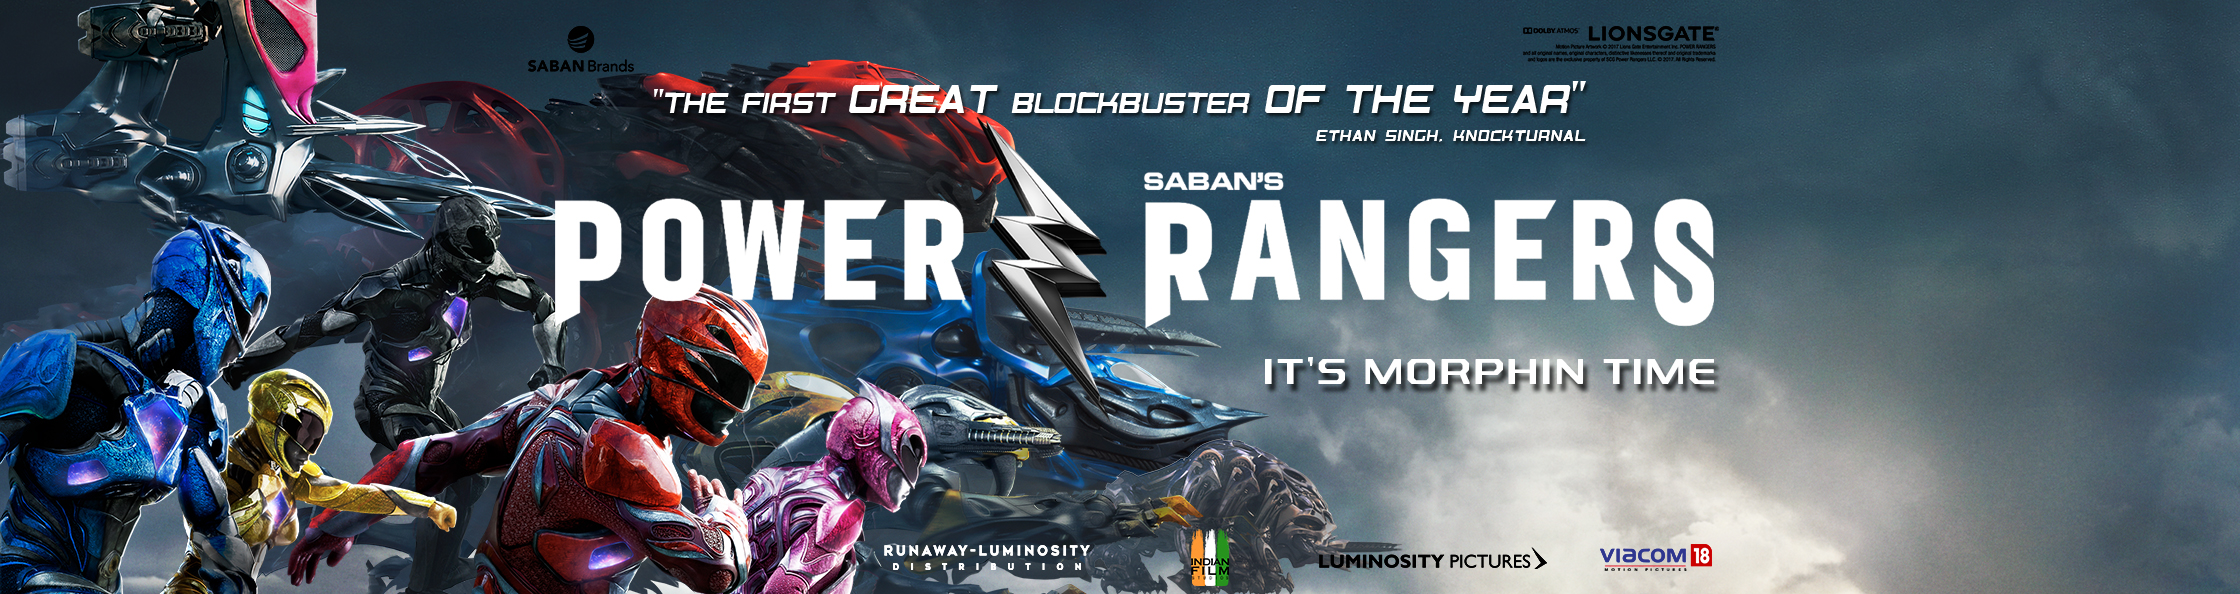 power-rangers_rllp-website-banner